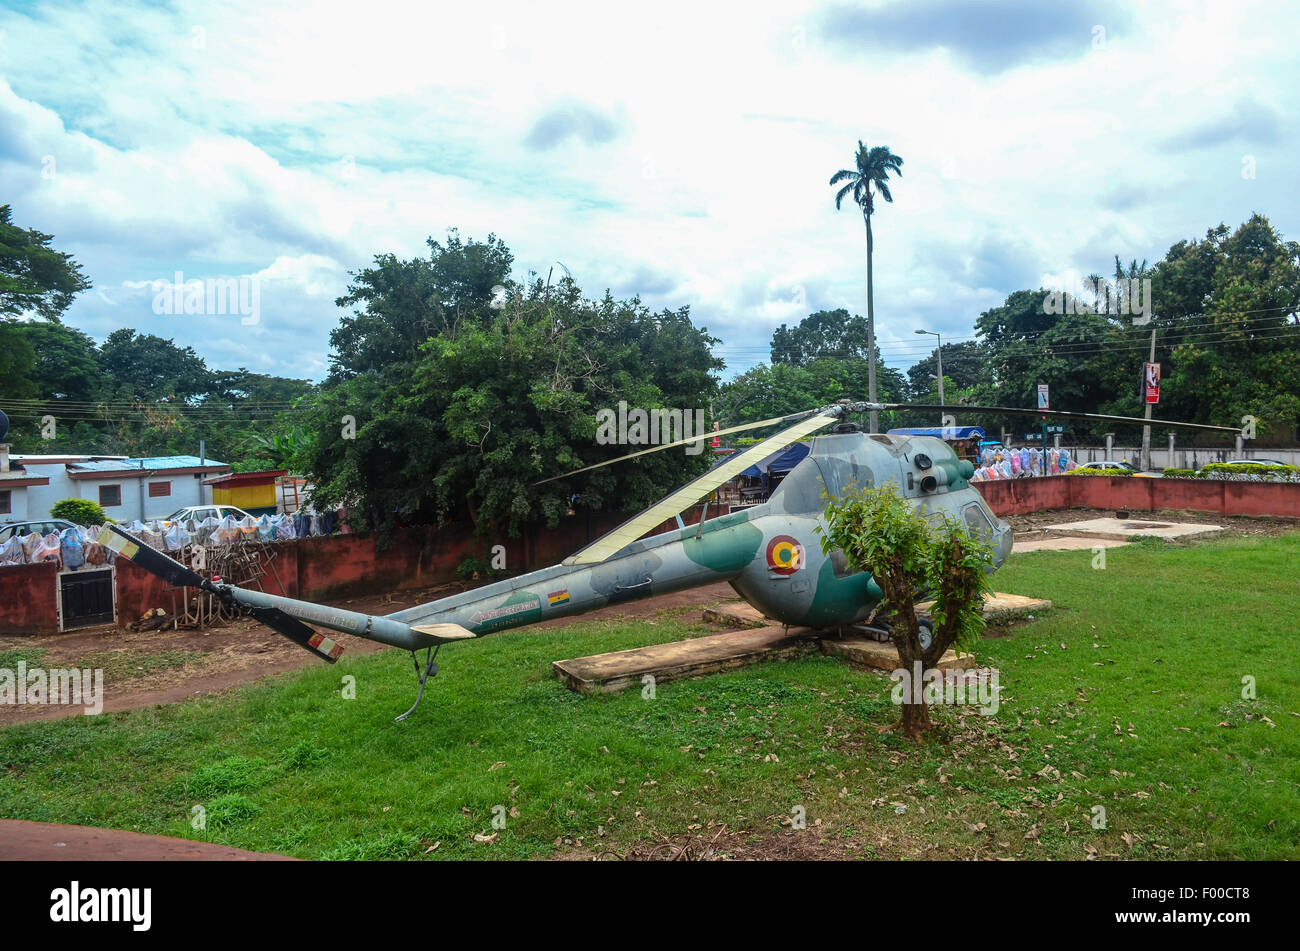 War helicopter in the backyard of the Armed Forces museum of Kumasi, Ghana - Stock Image